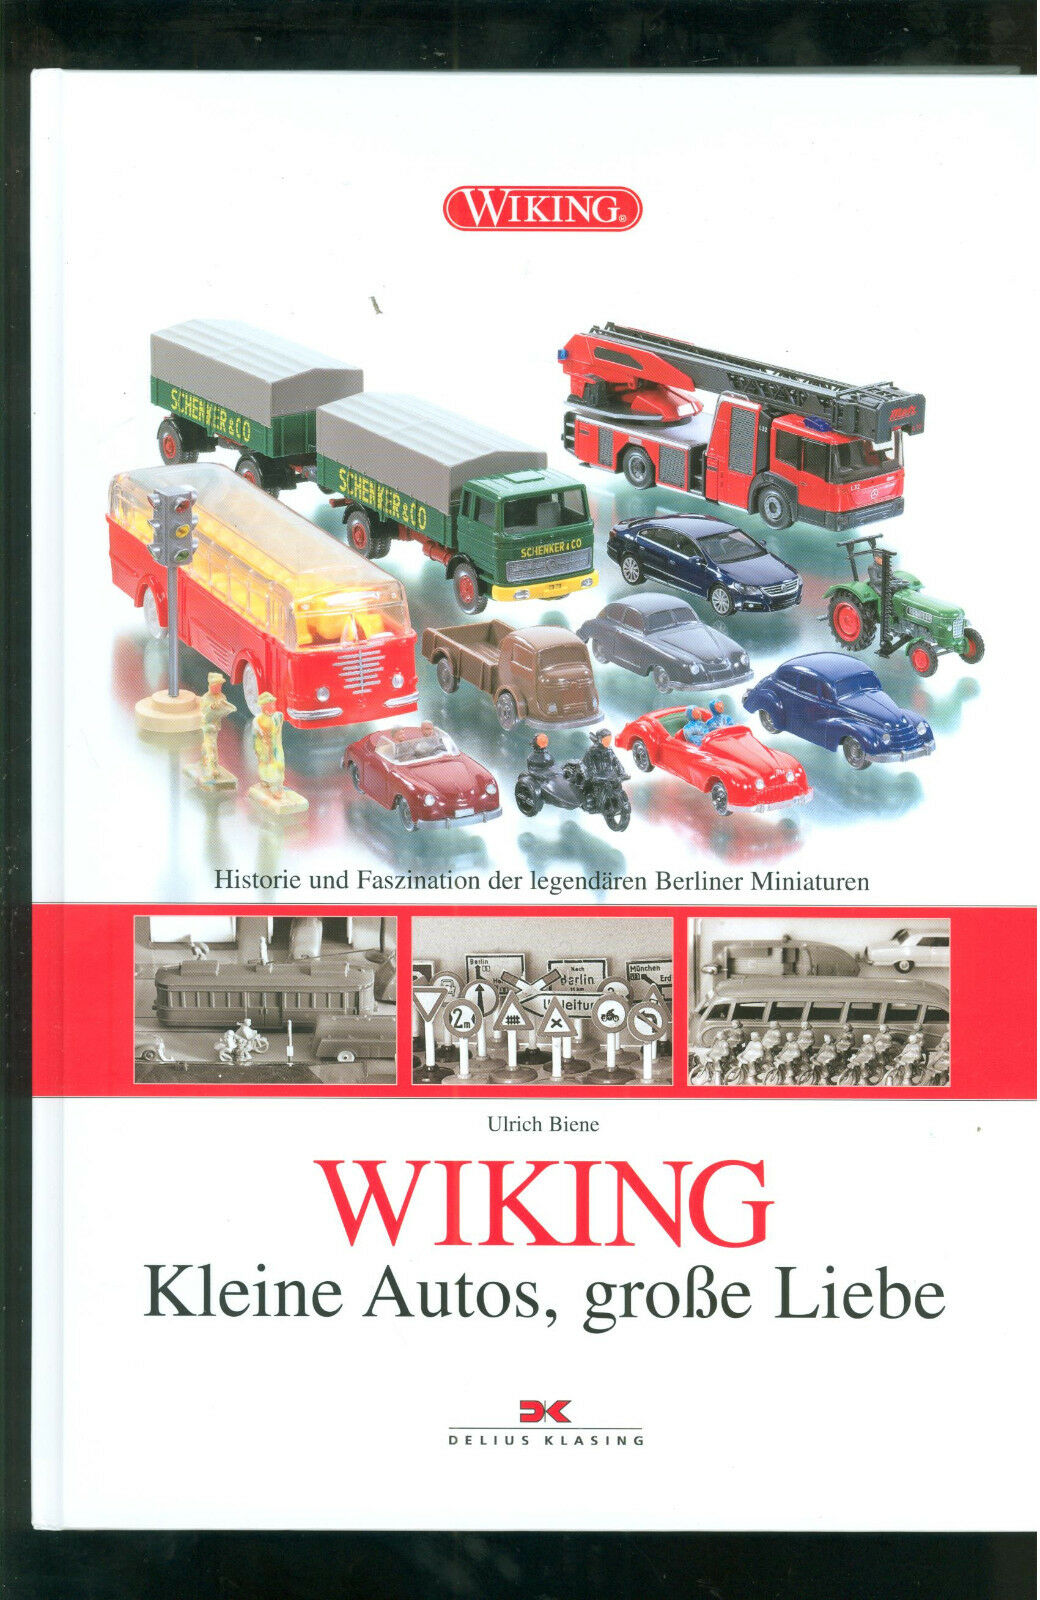 Pequeñas Wiking coches gran amor